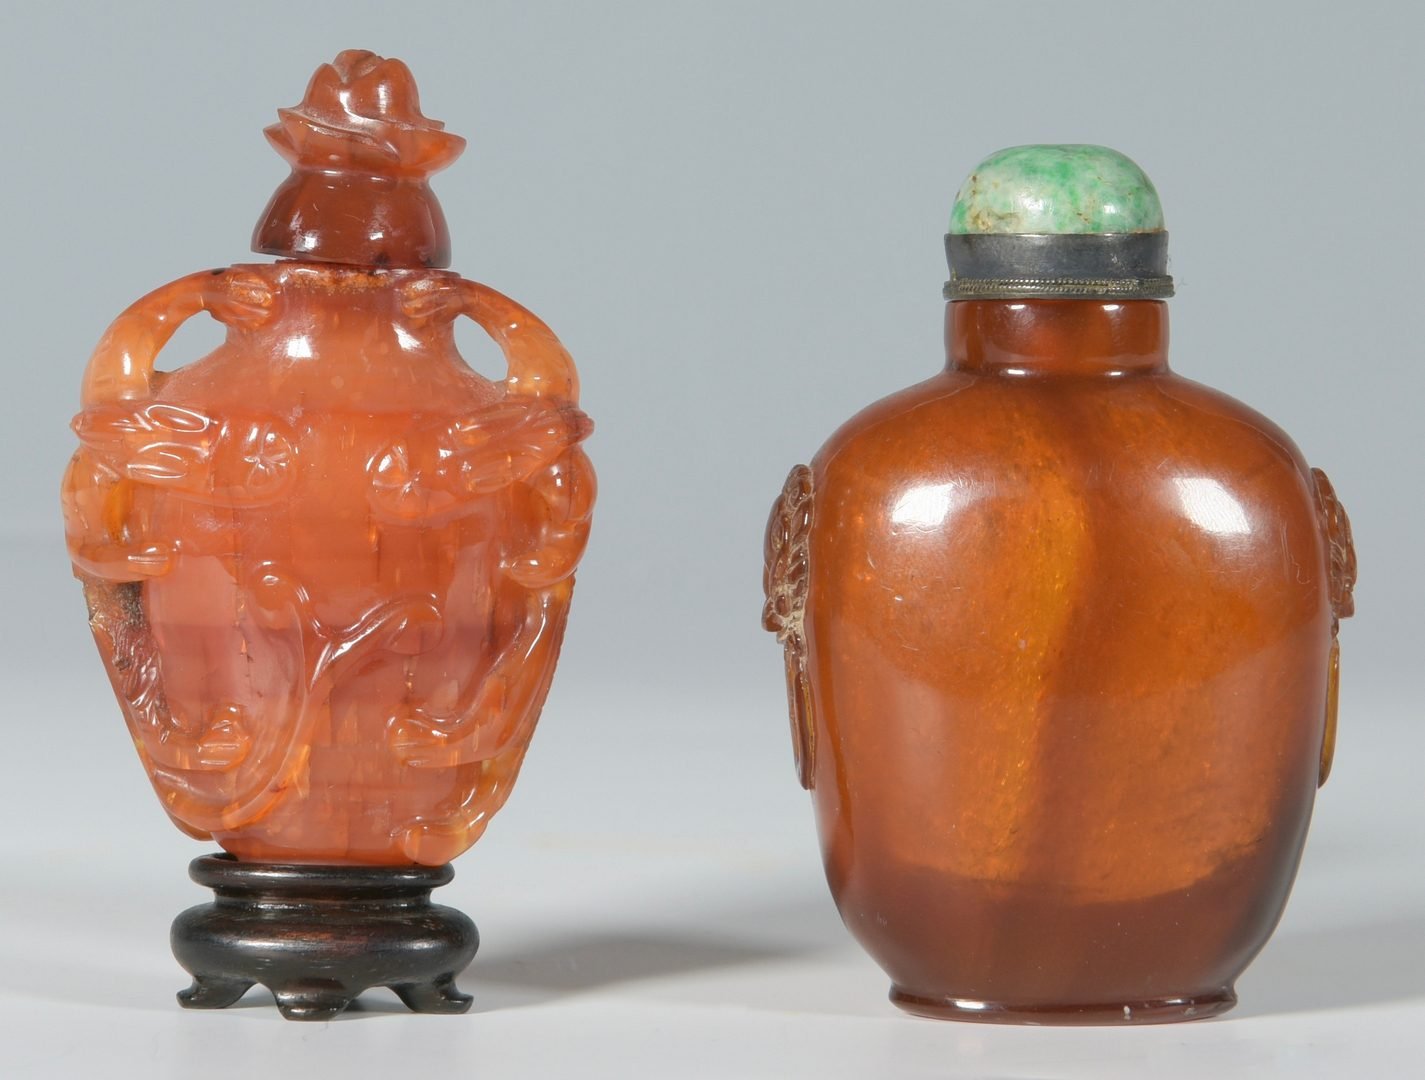 Lot 2: 2 Chinese Snuff Bottles inc. amber